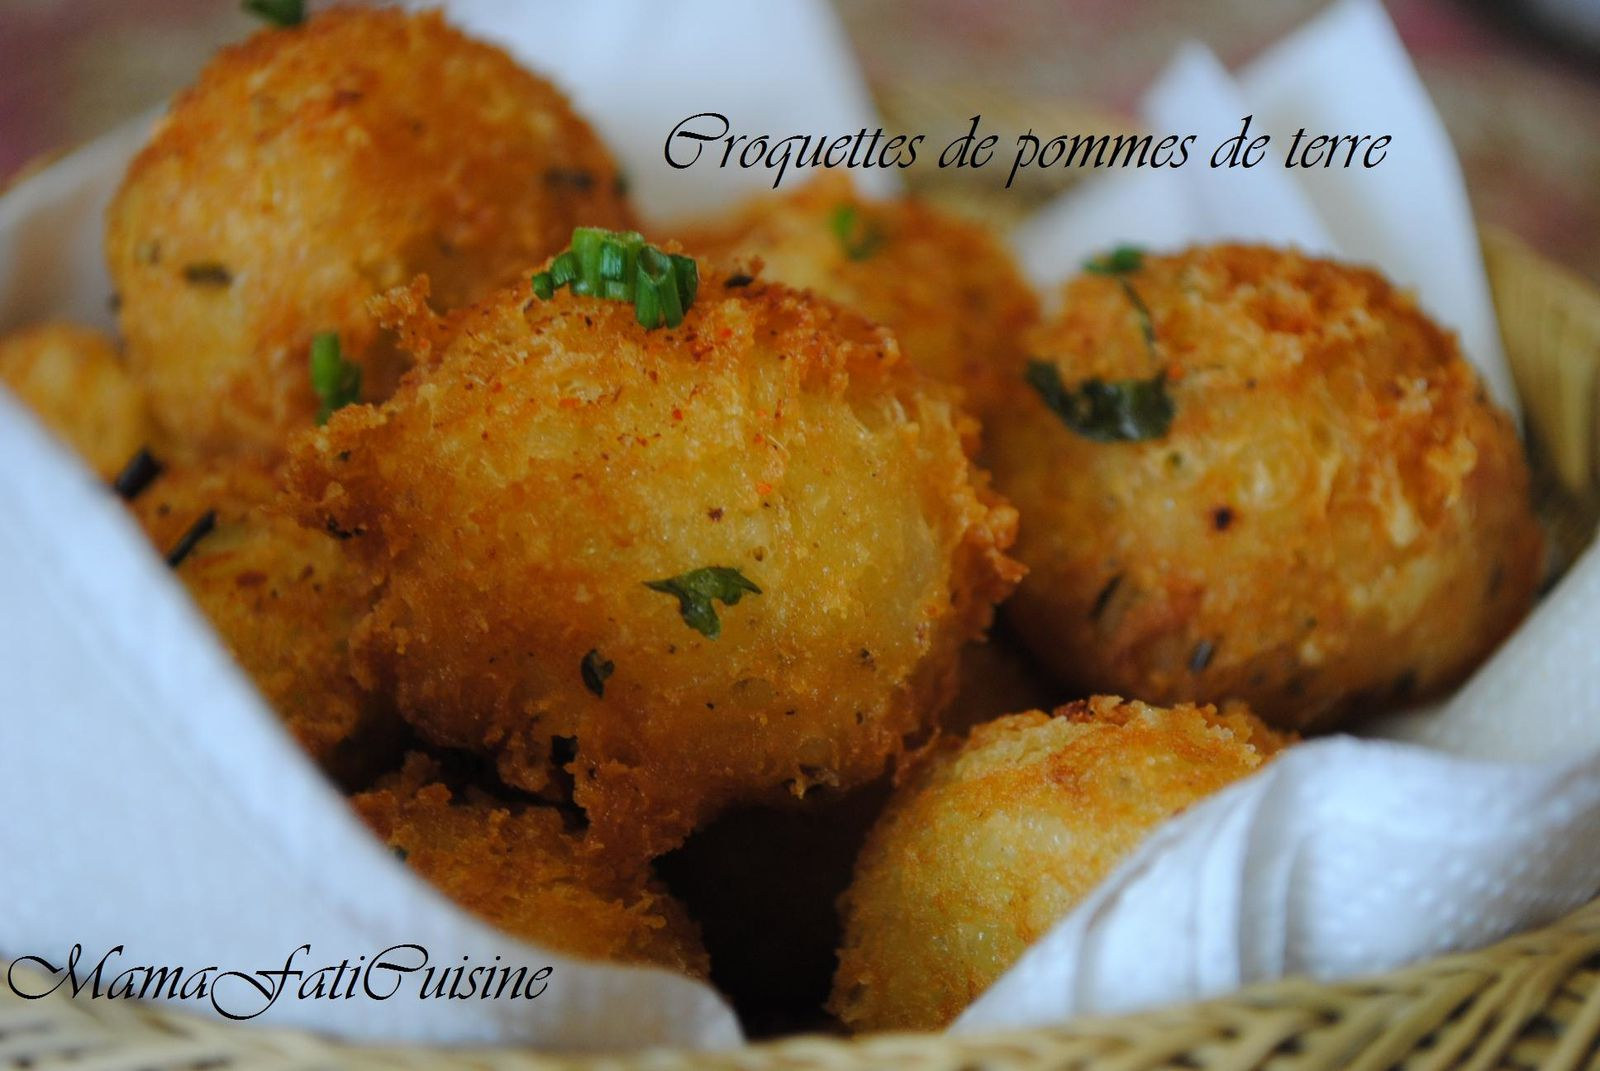 croquettes de pommes de terre au fromage mama fati. Black Bedroom Furniture Sets. Home Design Ideas